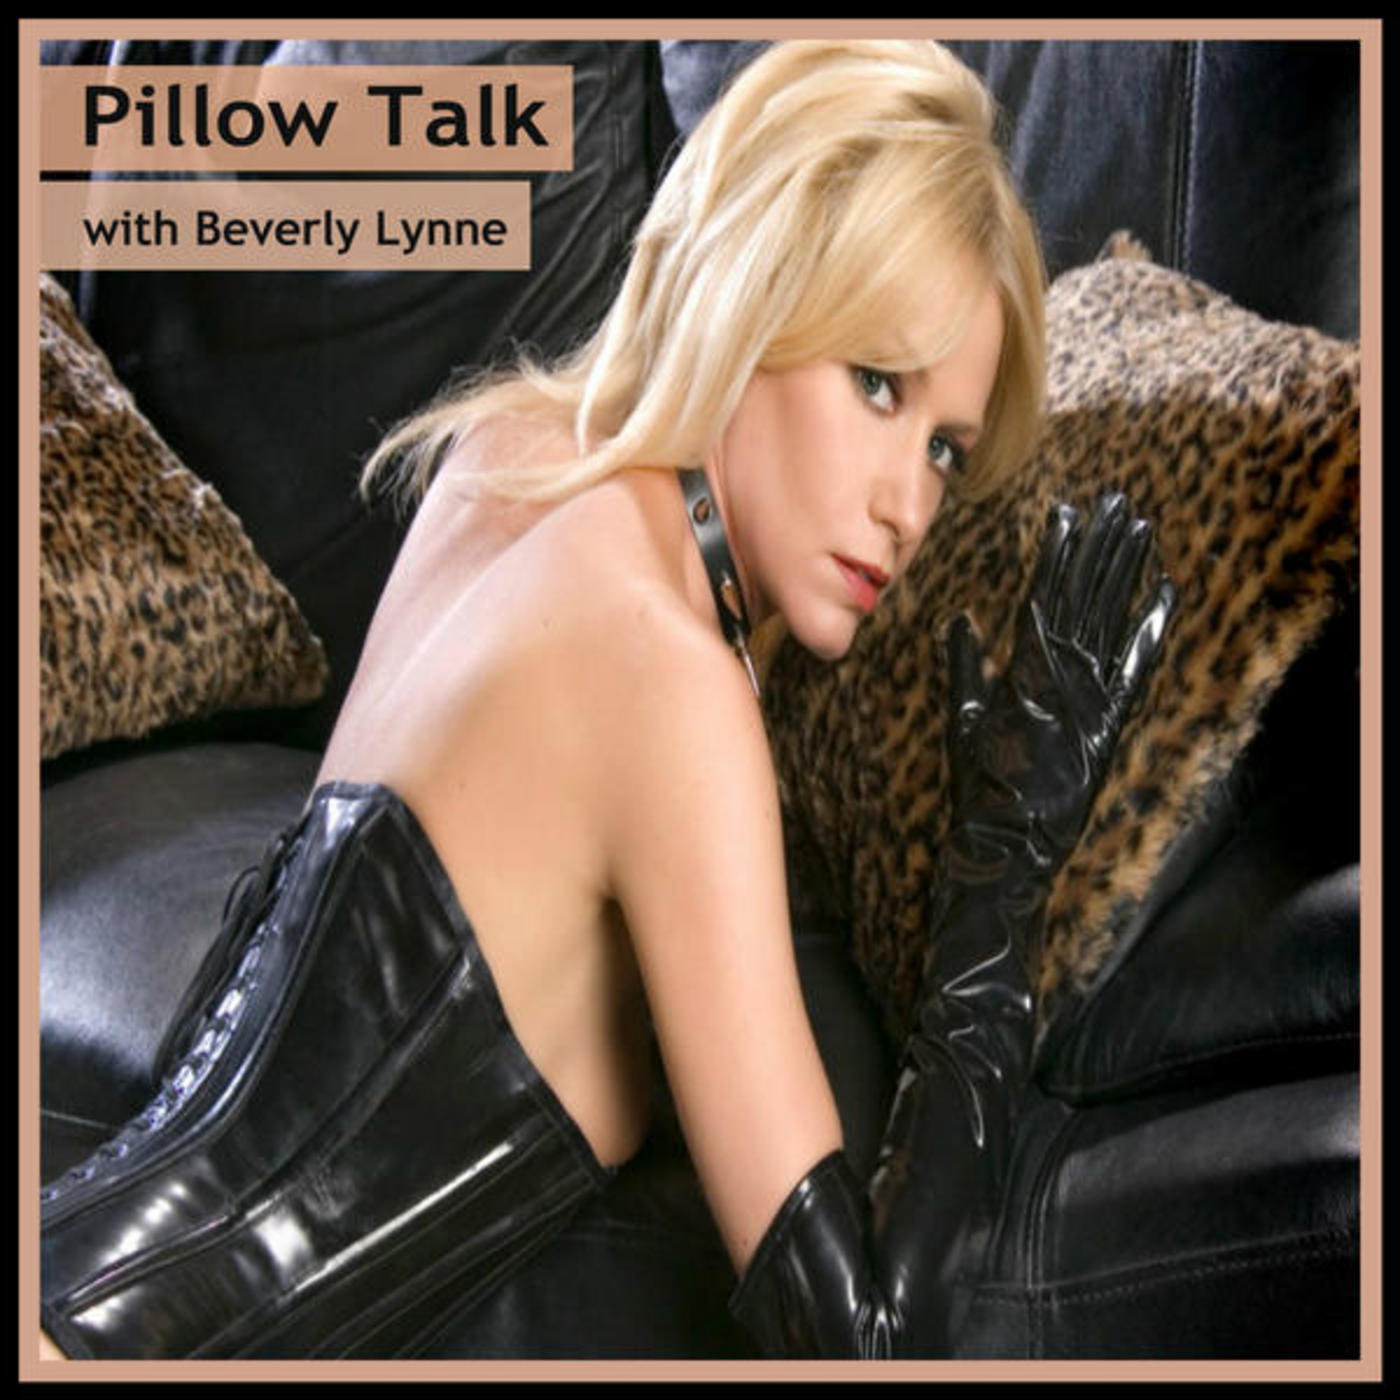 103 Pillow Talk With Beverly Lynne Uk Antiporn In Pillow Talk Sexuality Comedy Sex Education In Mp315 01 A Las  Ivoox